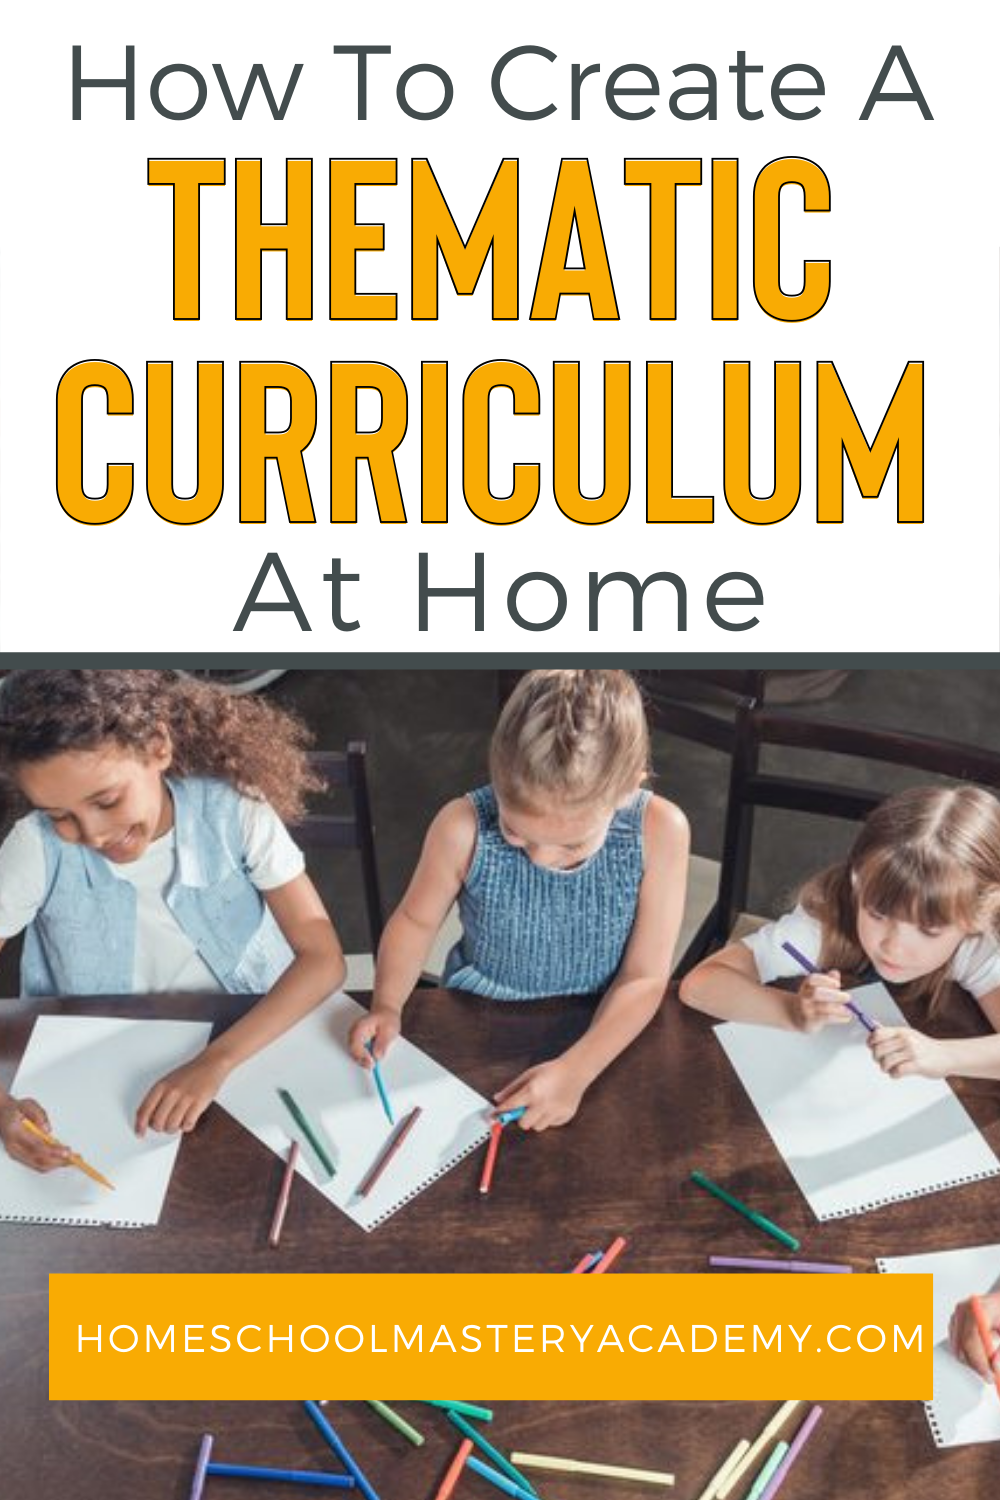 Here is a fantastic example of how to create a unit study or a curriculum around a theme. Lots of ideas inside! #unitstudy #thematiccurriculum #homeschoolcurriculum #homeschool #howto